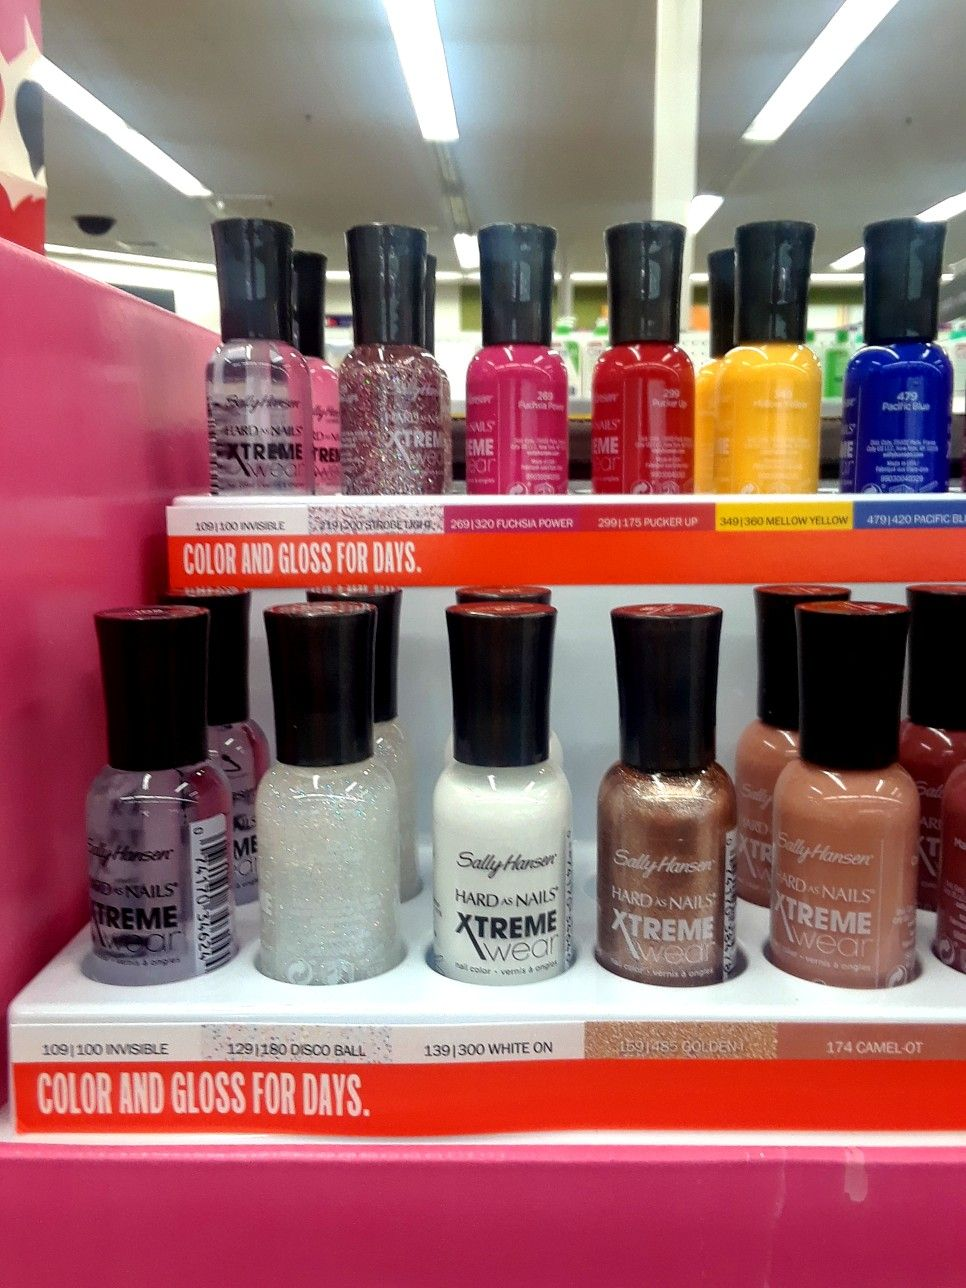 Sally Hansen extreme wear spotted at walgreens | Hard ...